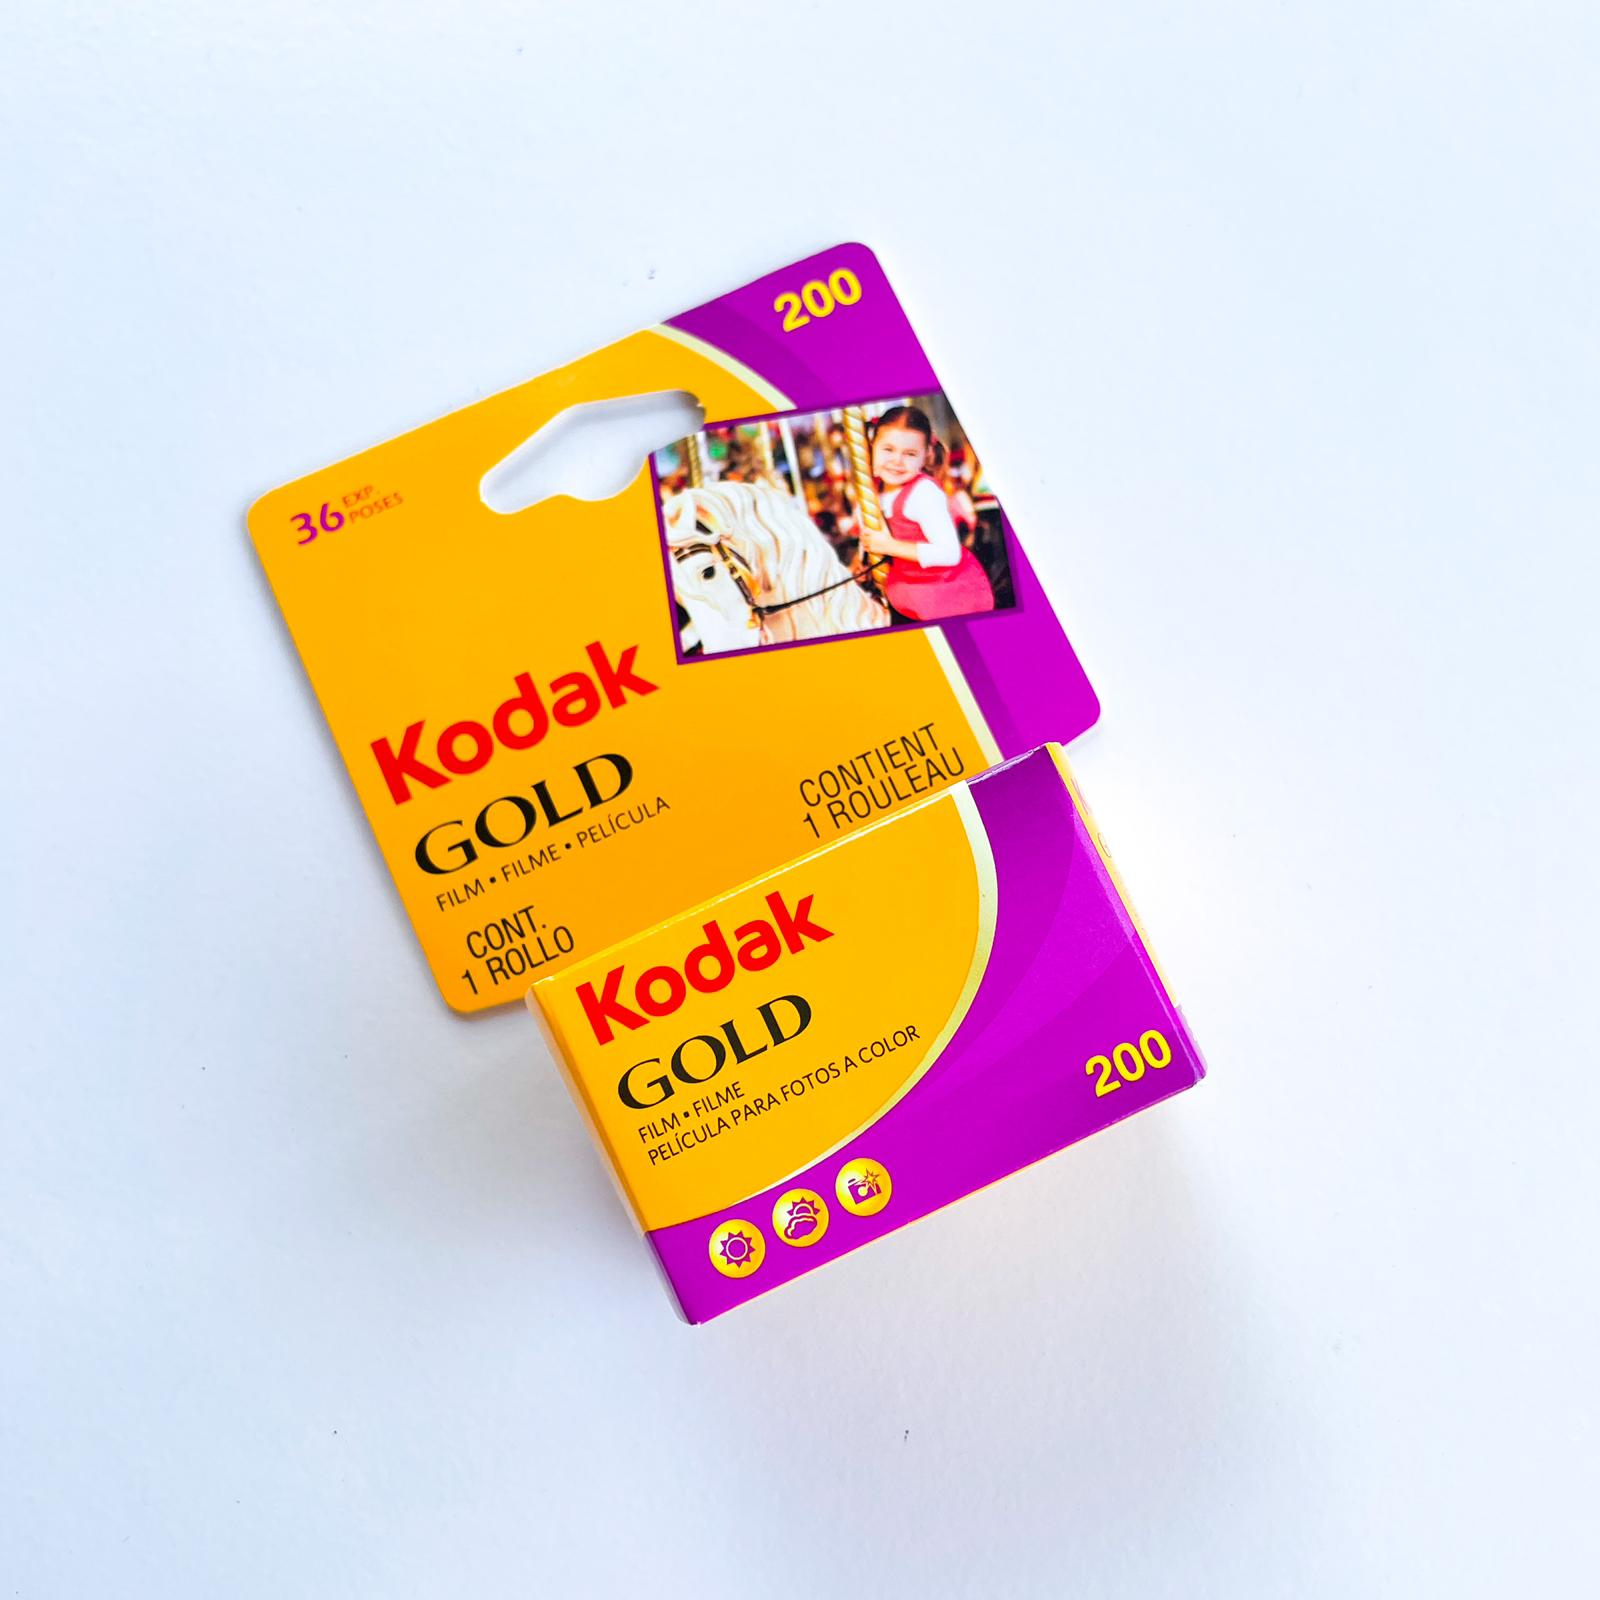 Kodak Gold 200 Film